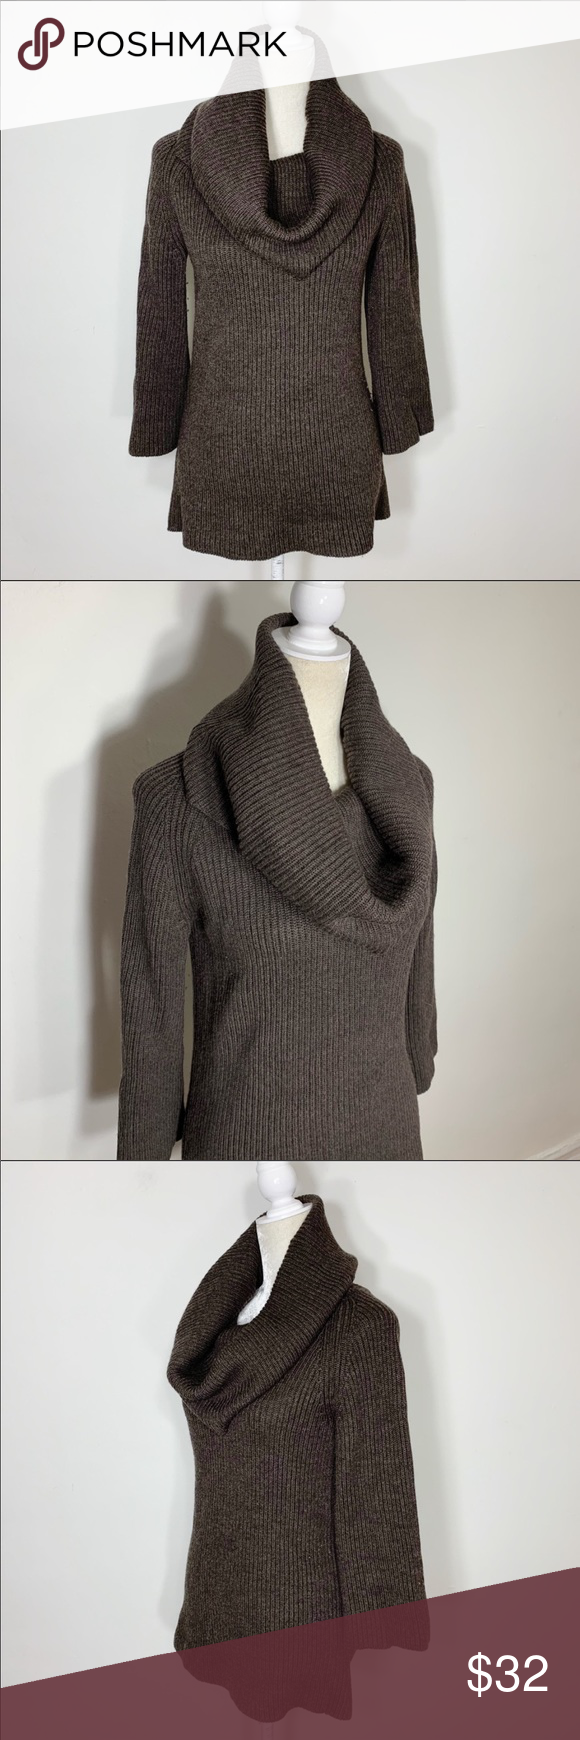 e34c7fca736b Banana Republic • 3 4 sleeve cowl knit sweater Great pre-owned condition!